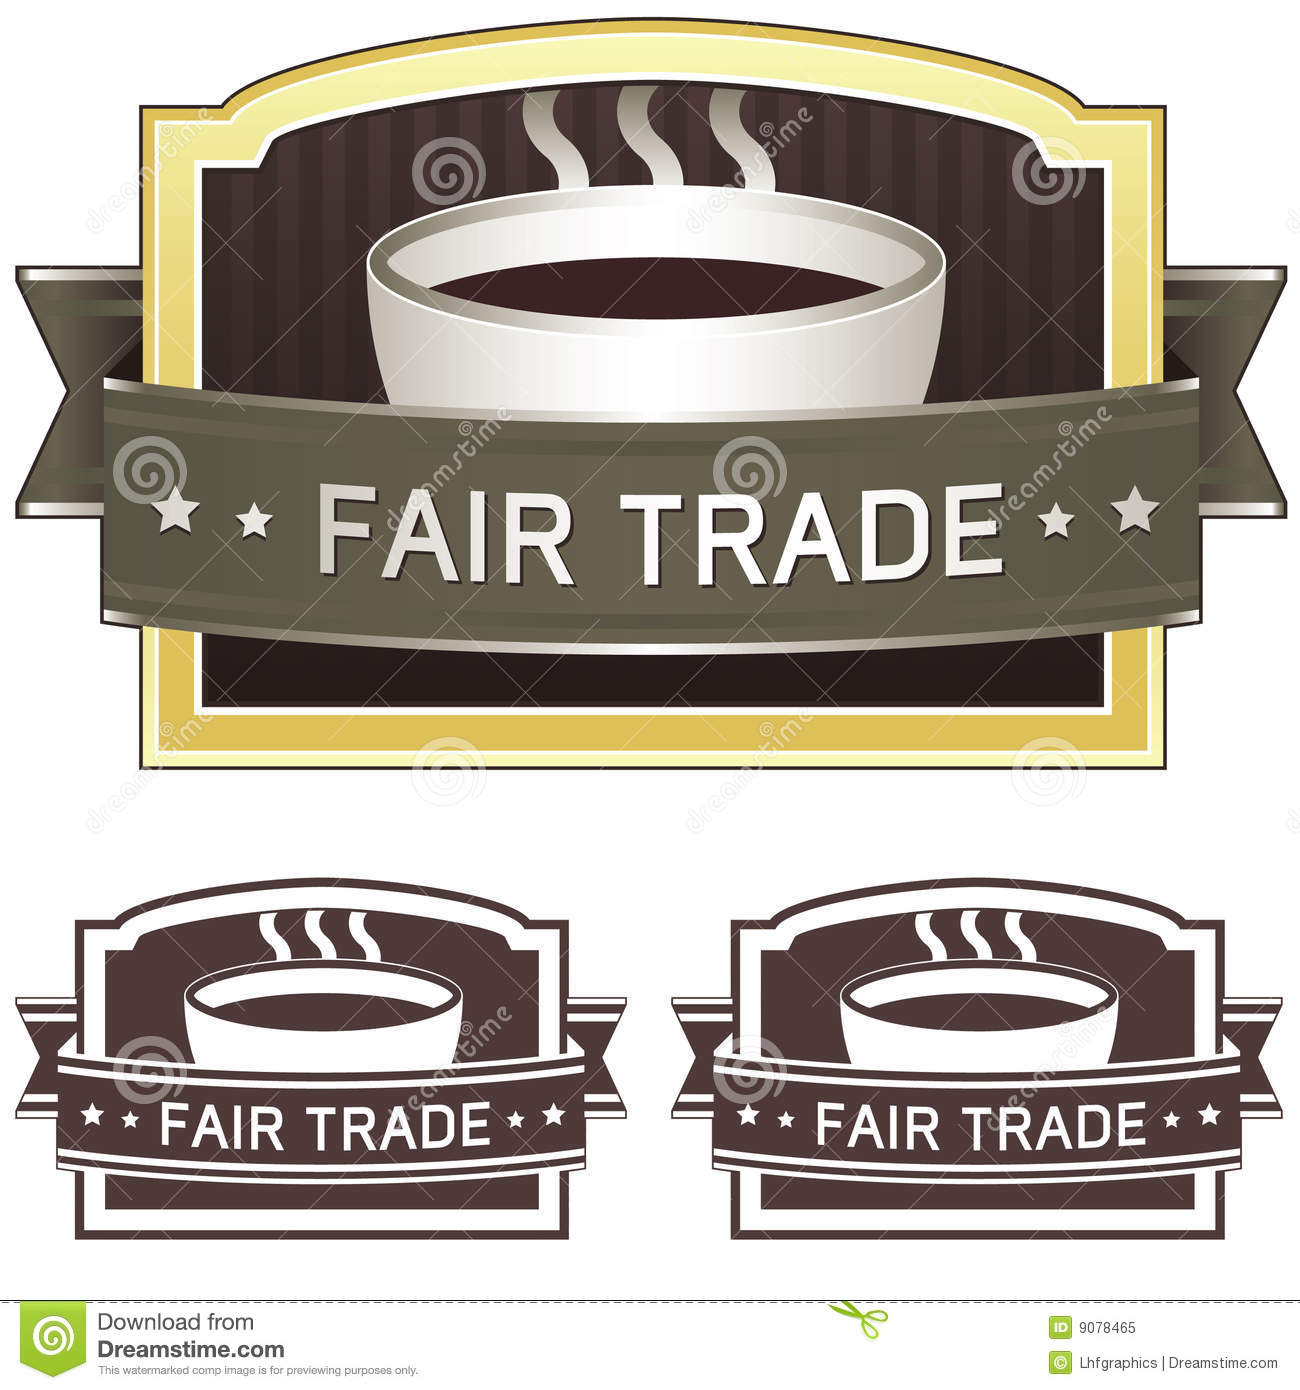 Fair Trade Coffee ~ Fair trade coffee label sticker royalty free stock photo